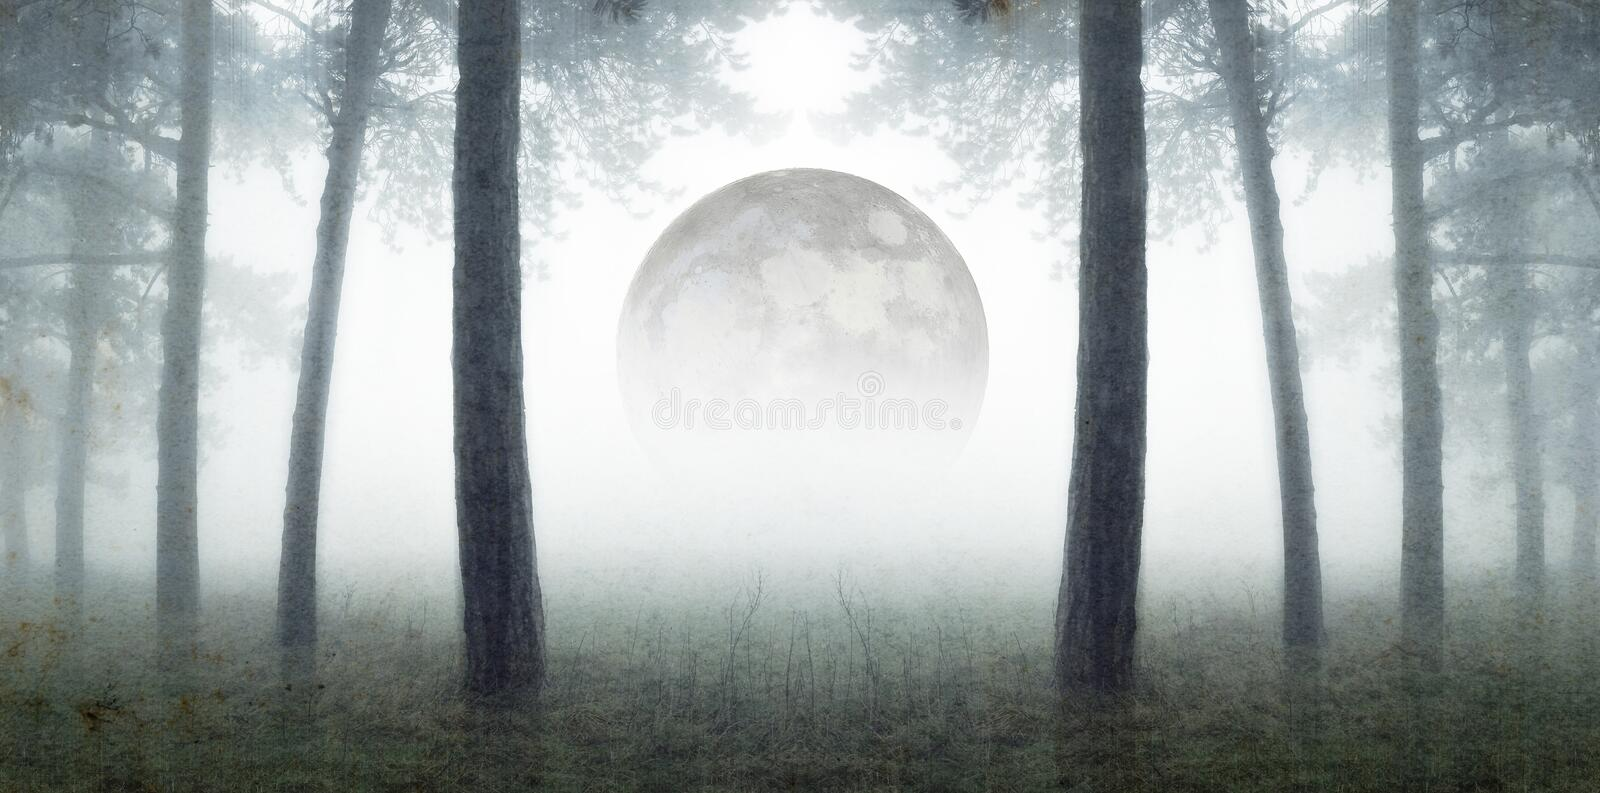 An artistic double exposure. Looking out across a misty field, framed by winter trees. With the moon rising in the background. Wit royalty free stock photo